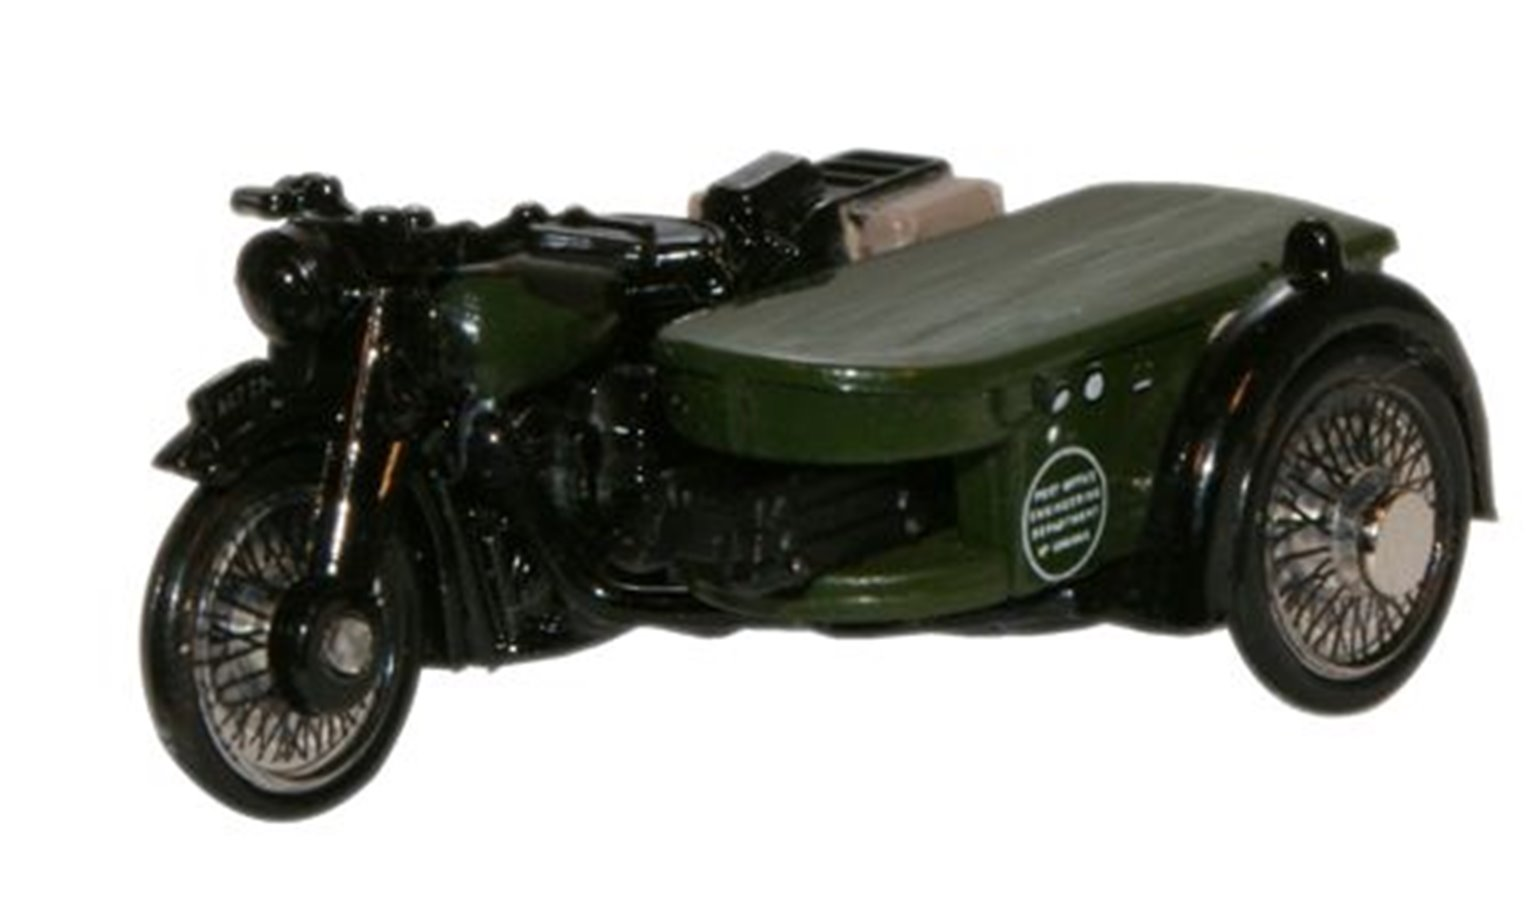 Post Office Telephones BSA Motorcycle & Sidecar